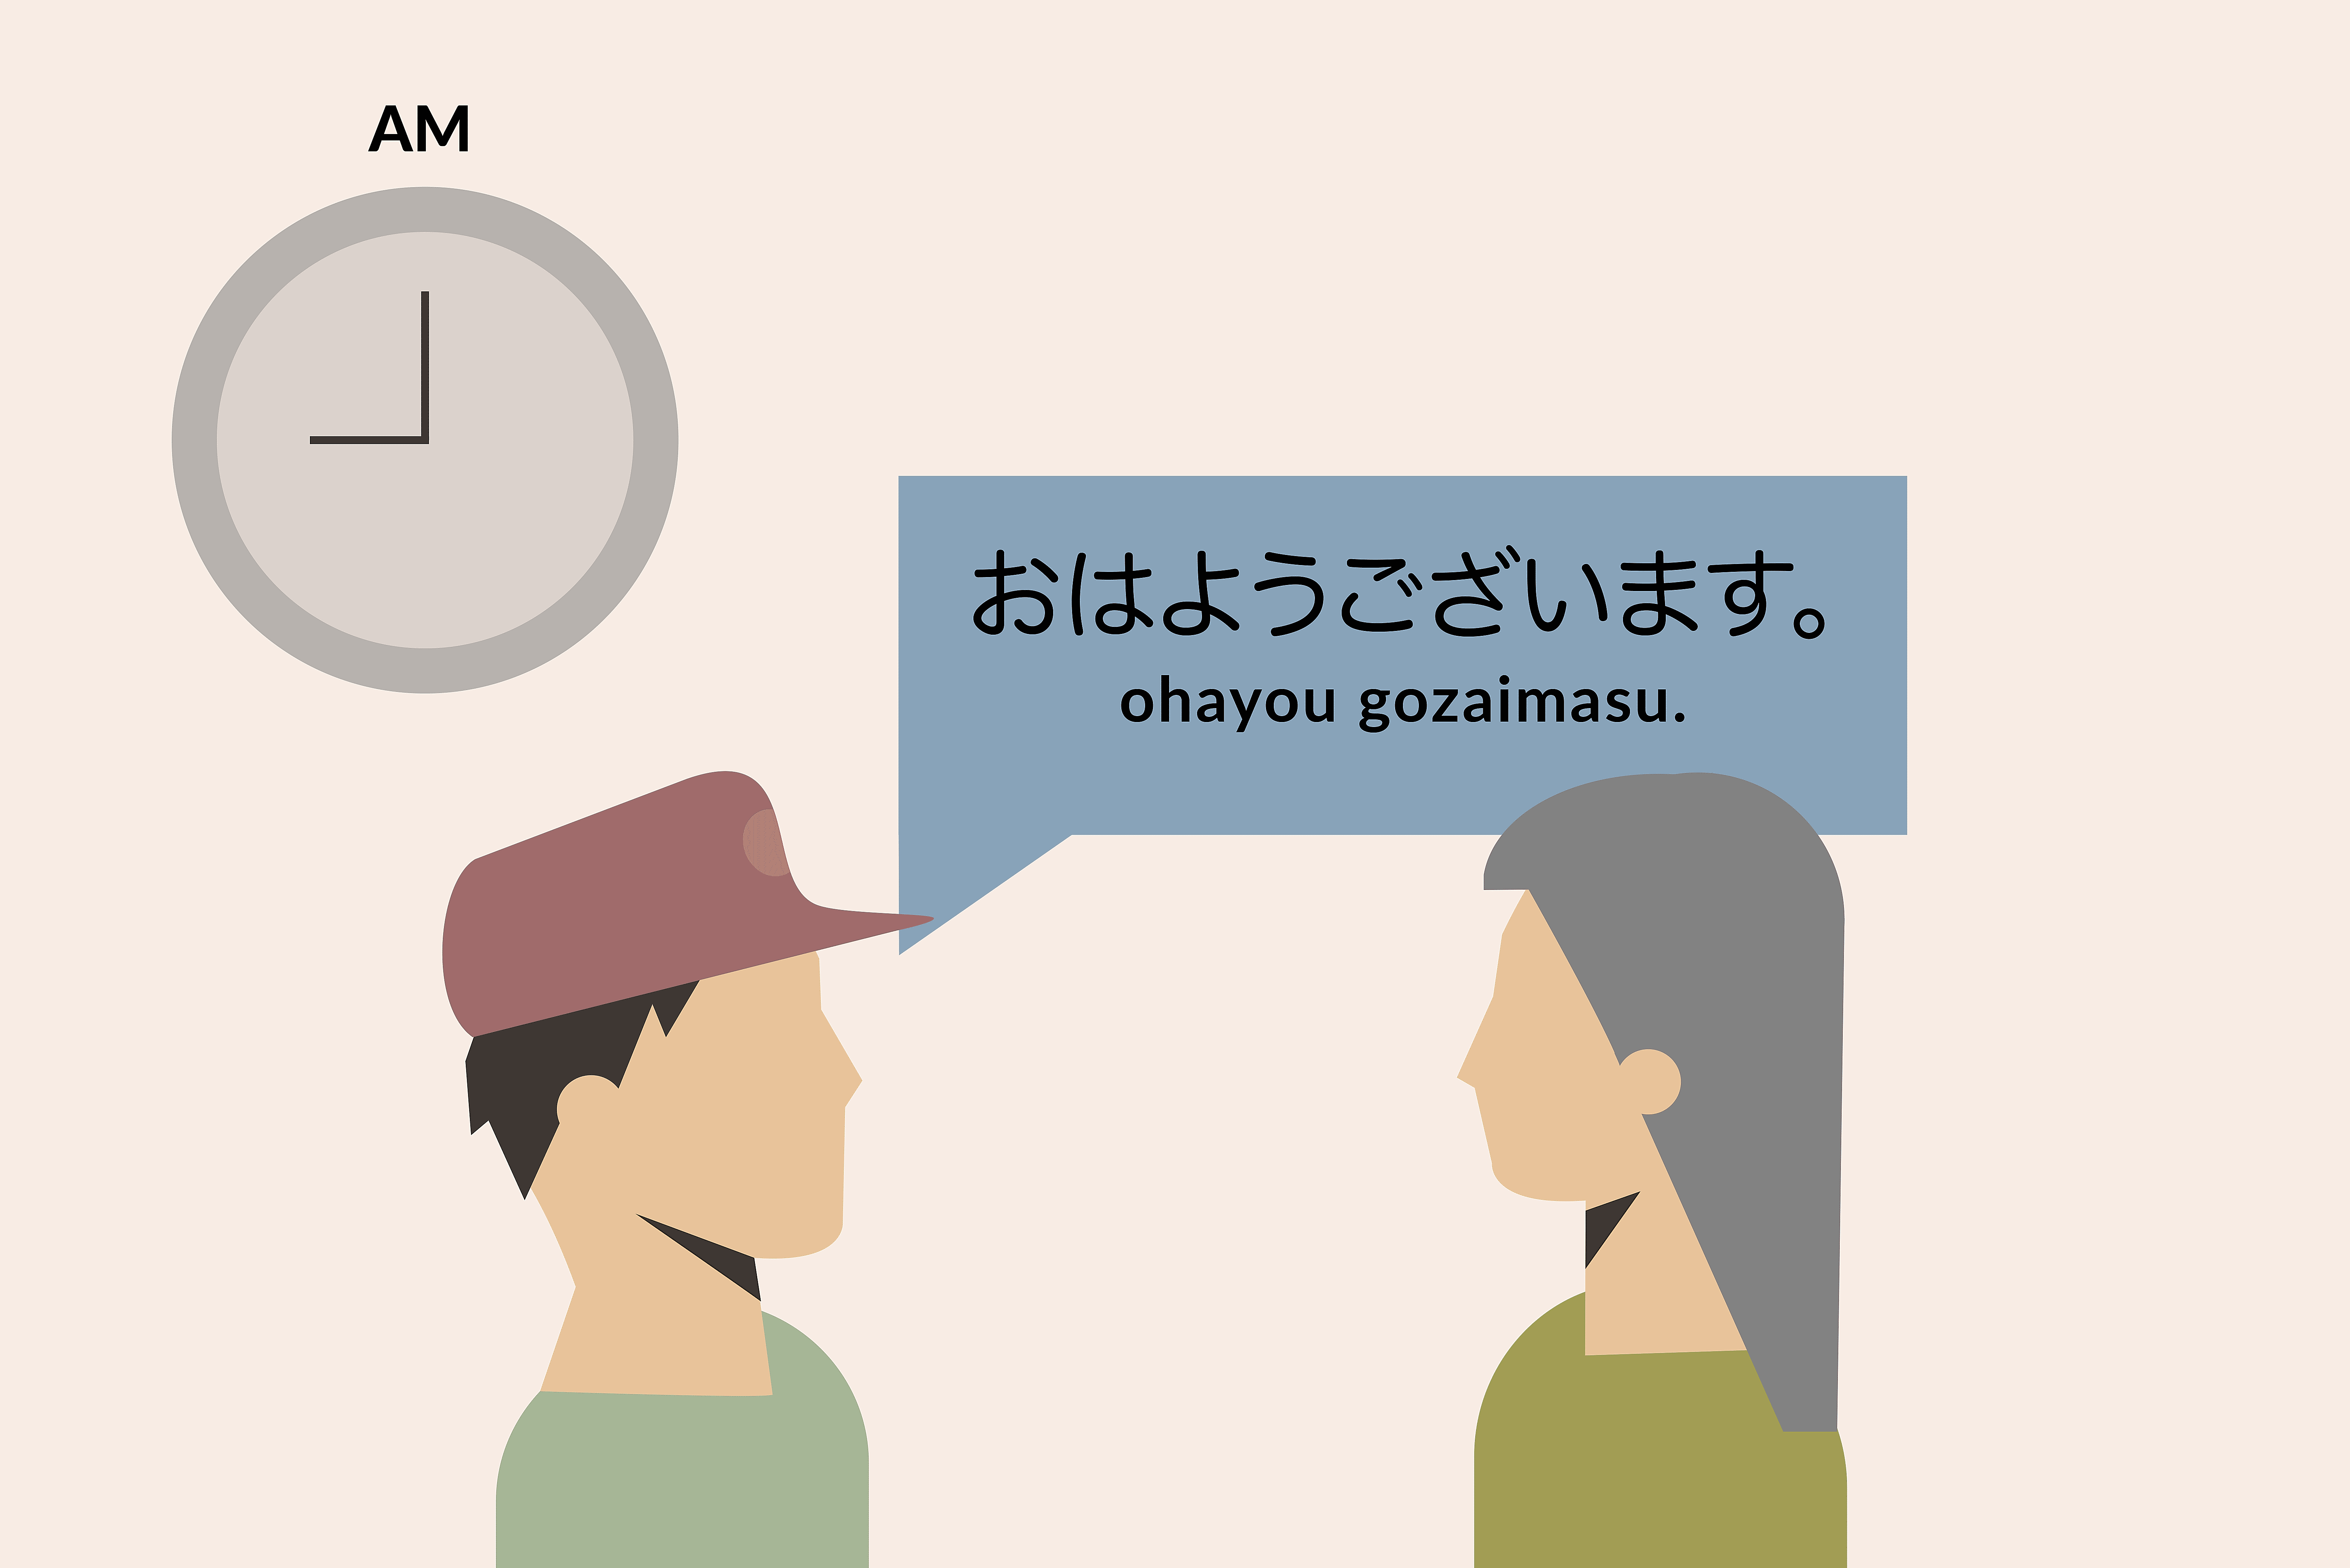 Good Morning And Other Common Japanese Greetings